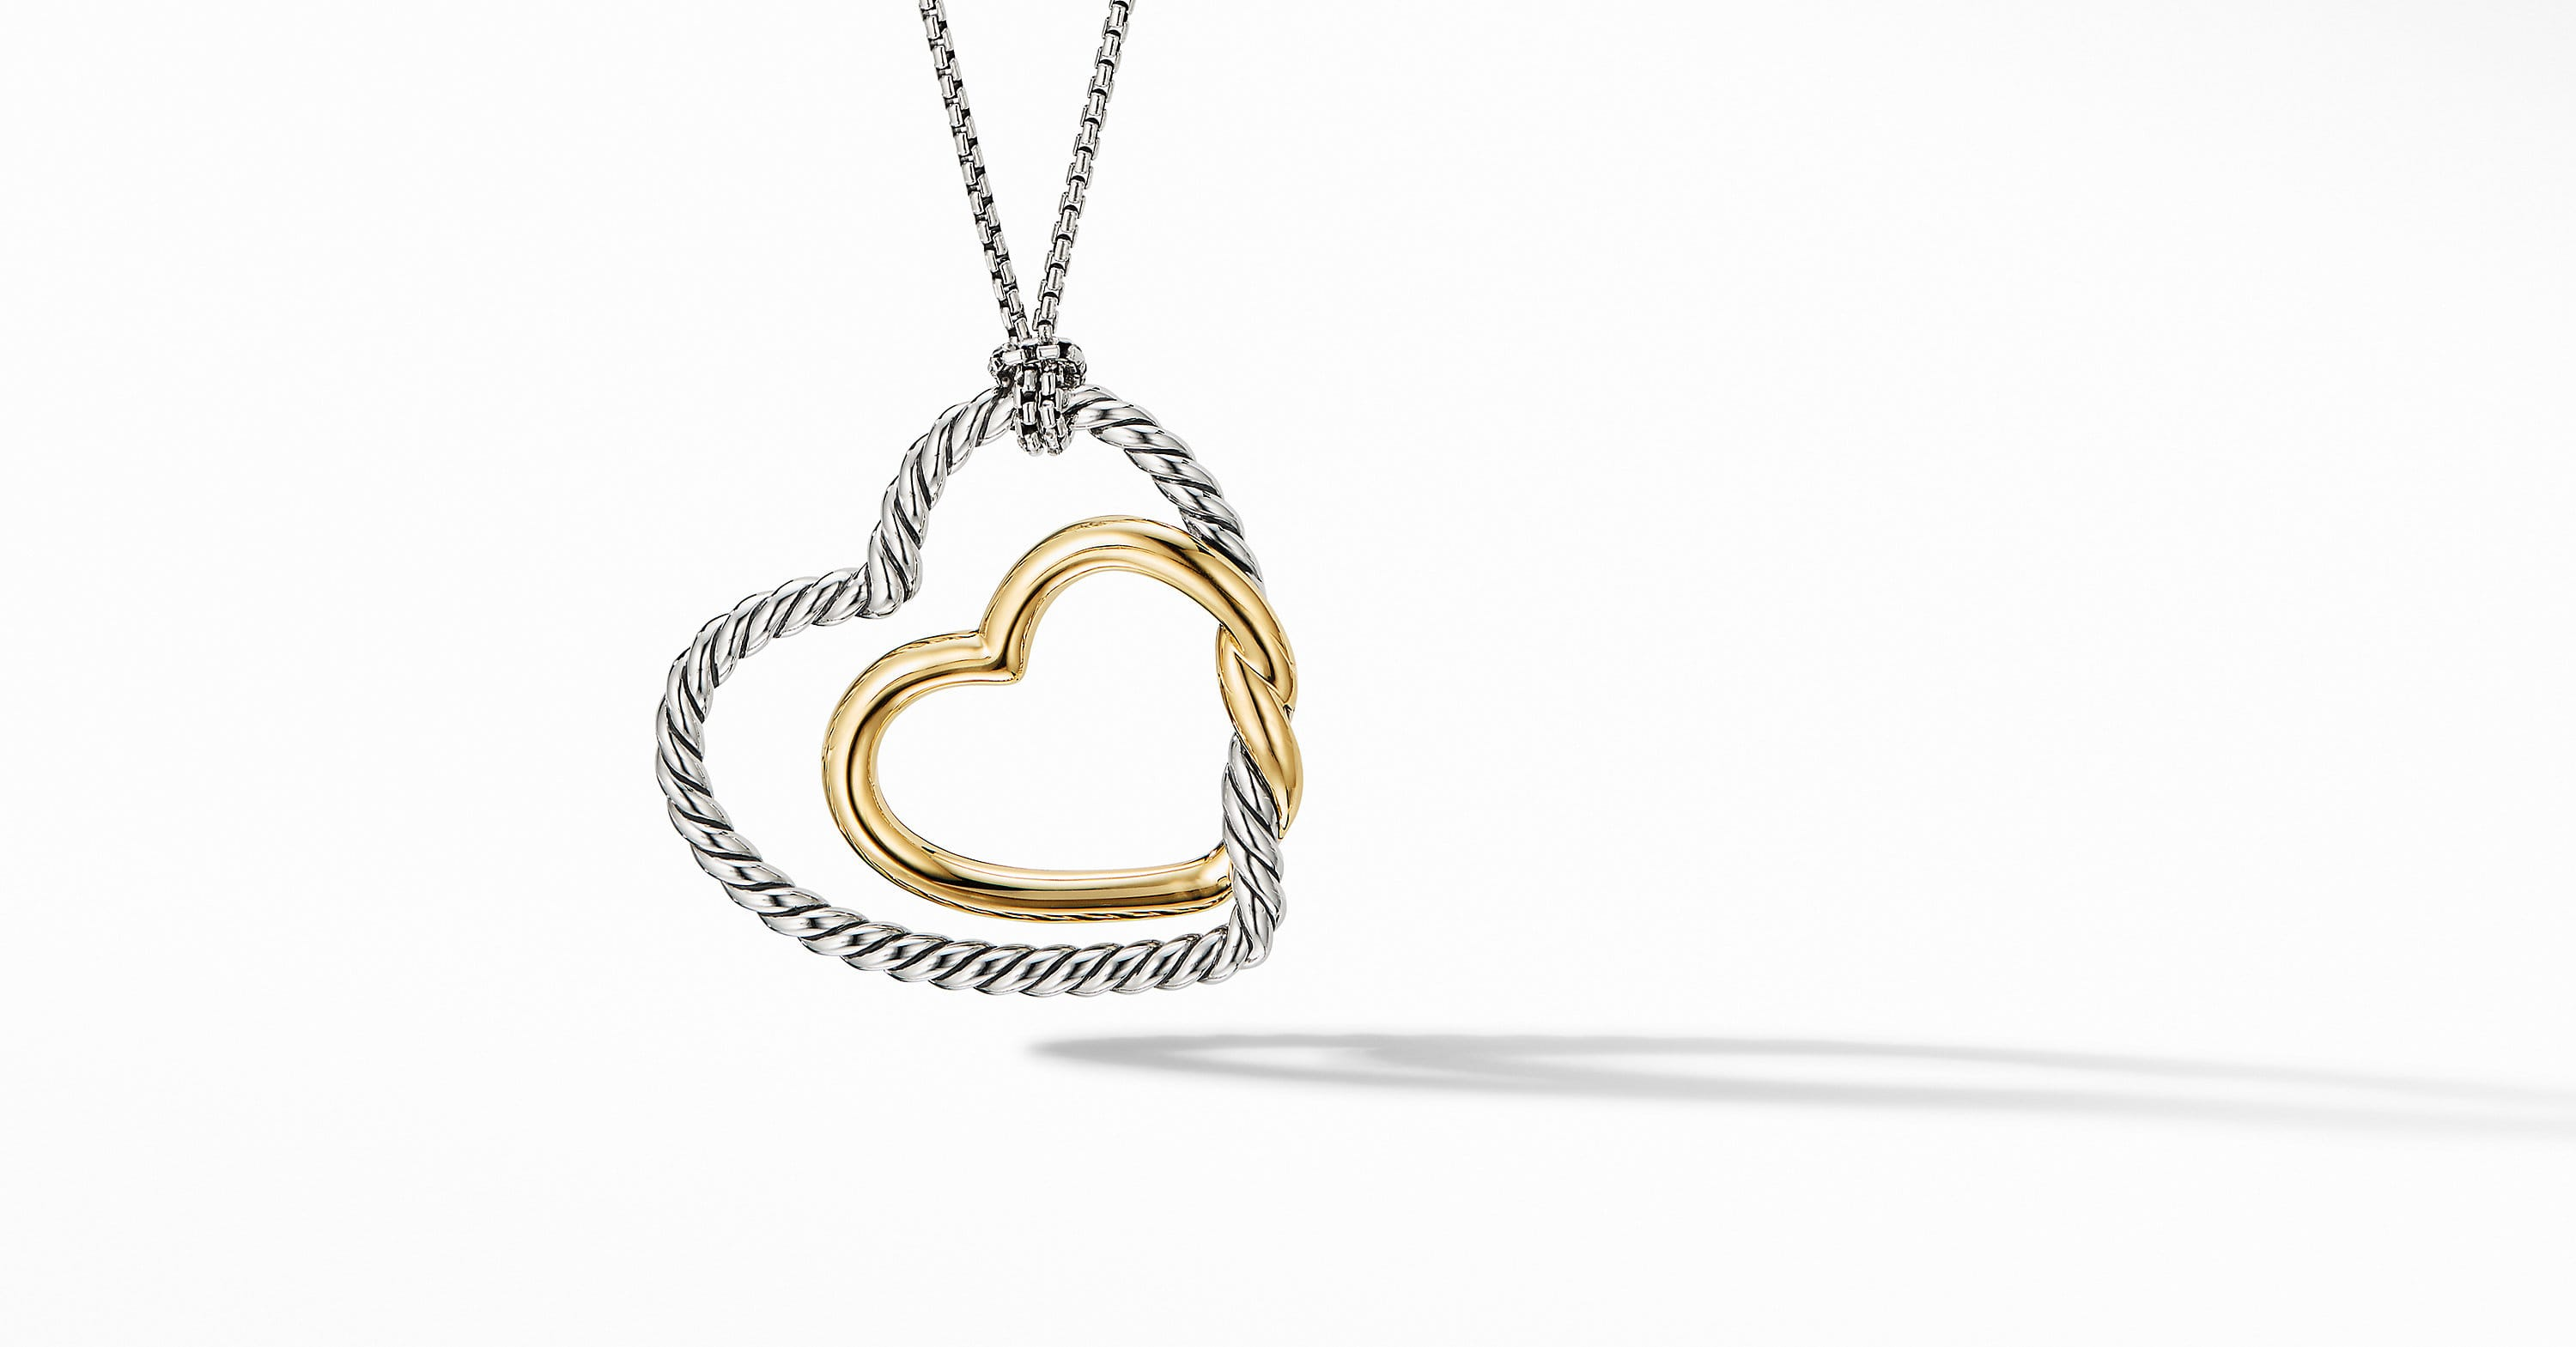 Continuance Heart Necklace with 18K Yellow Gold